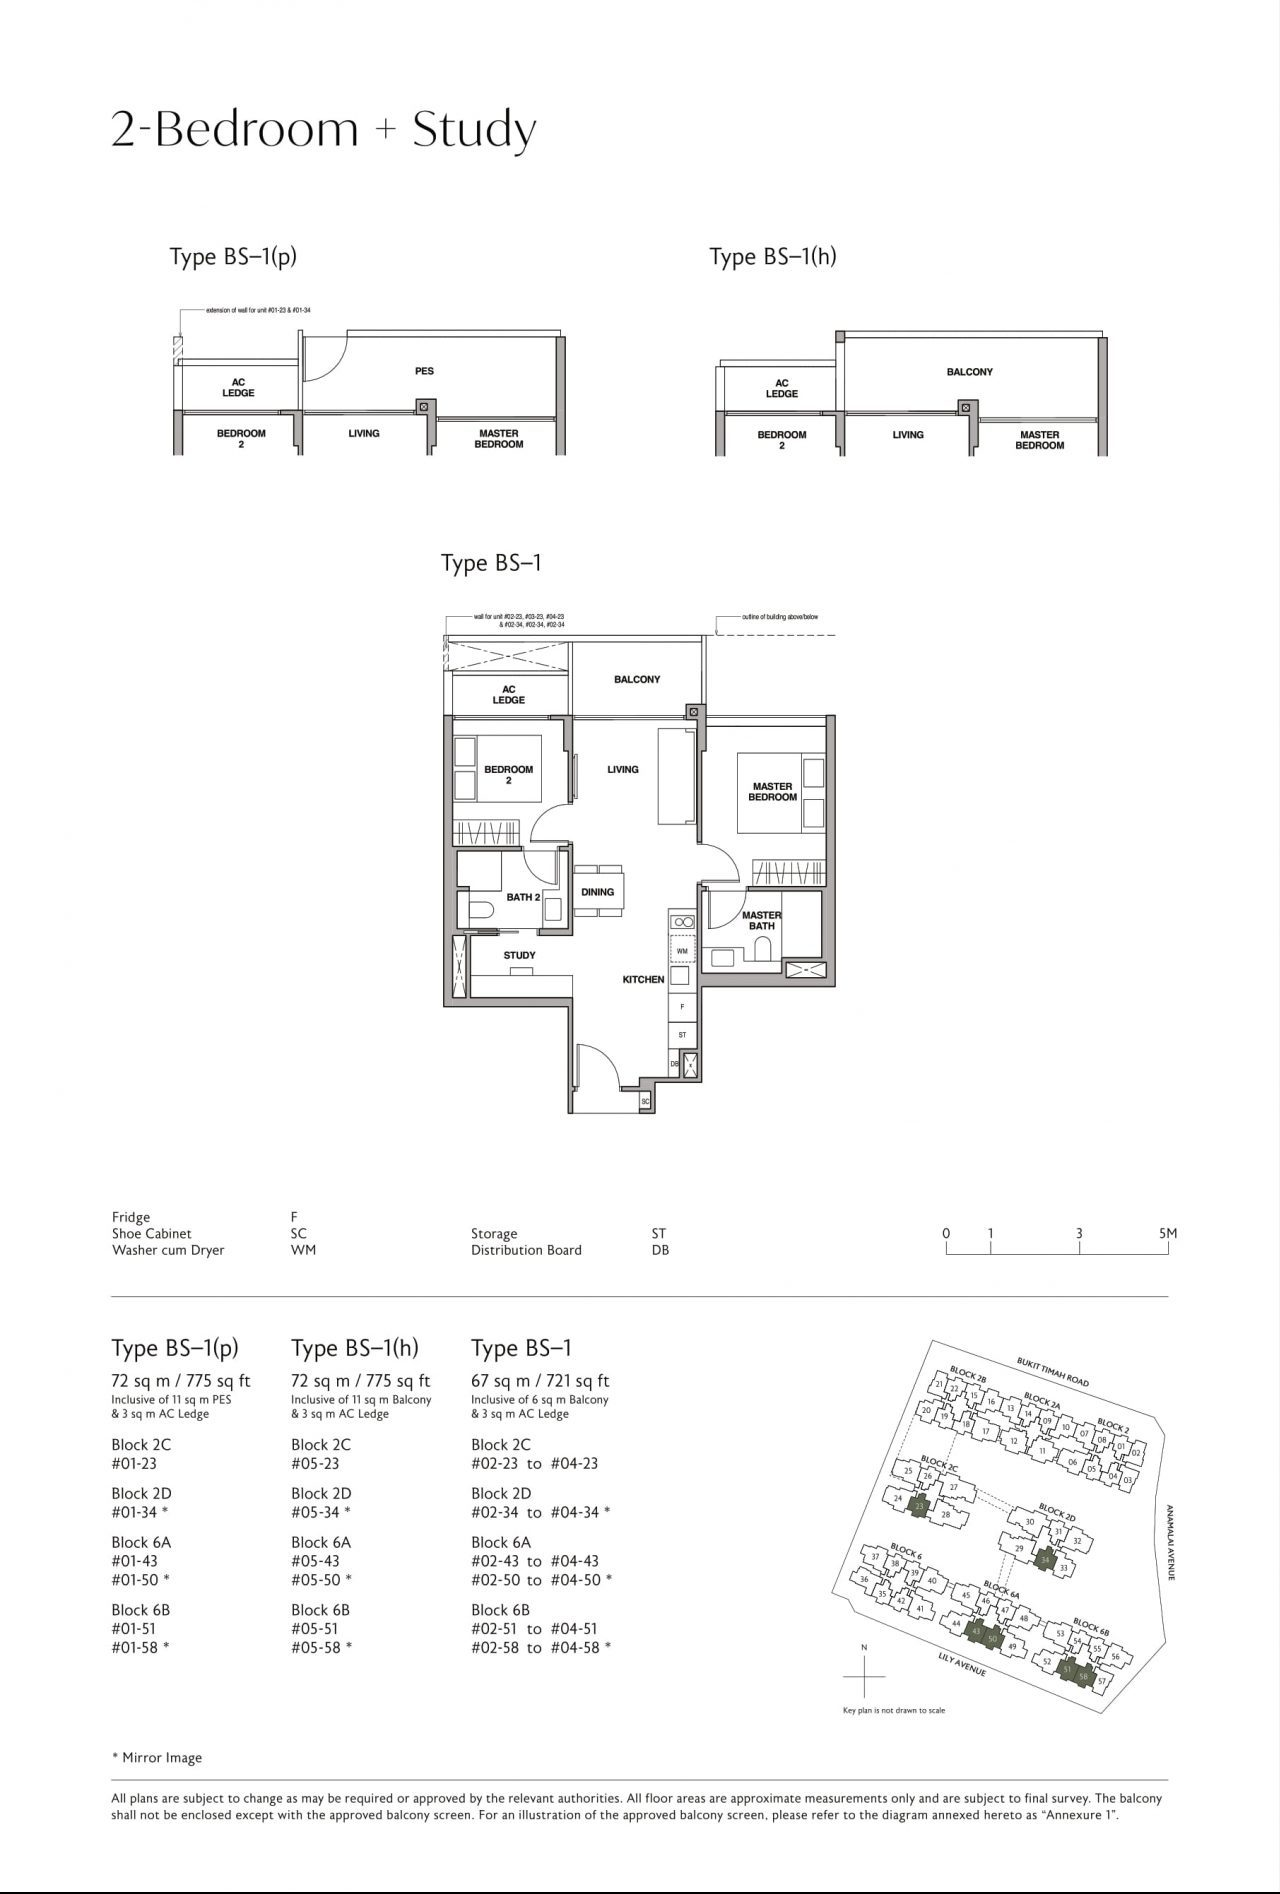 Royalgreen's two-bedroom + study & two-bedroom + guest types